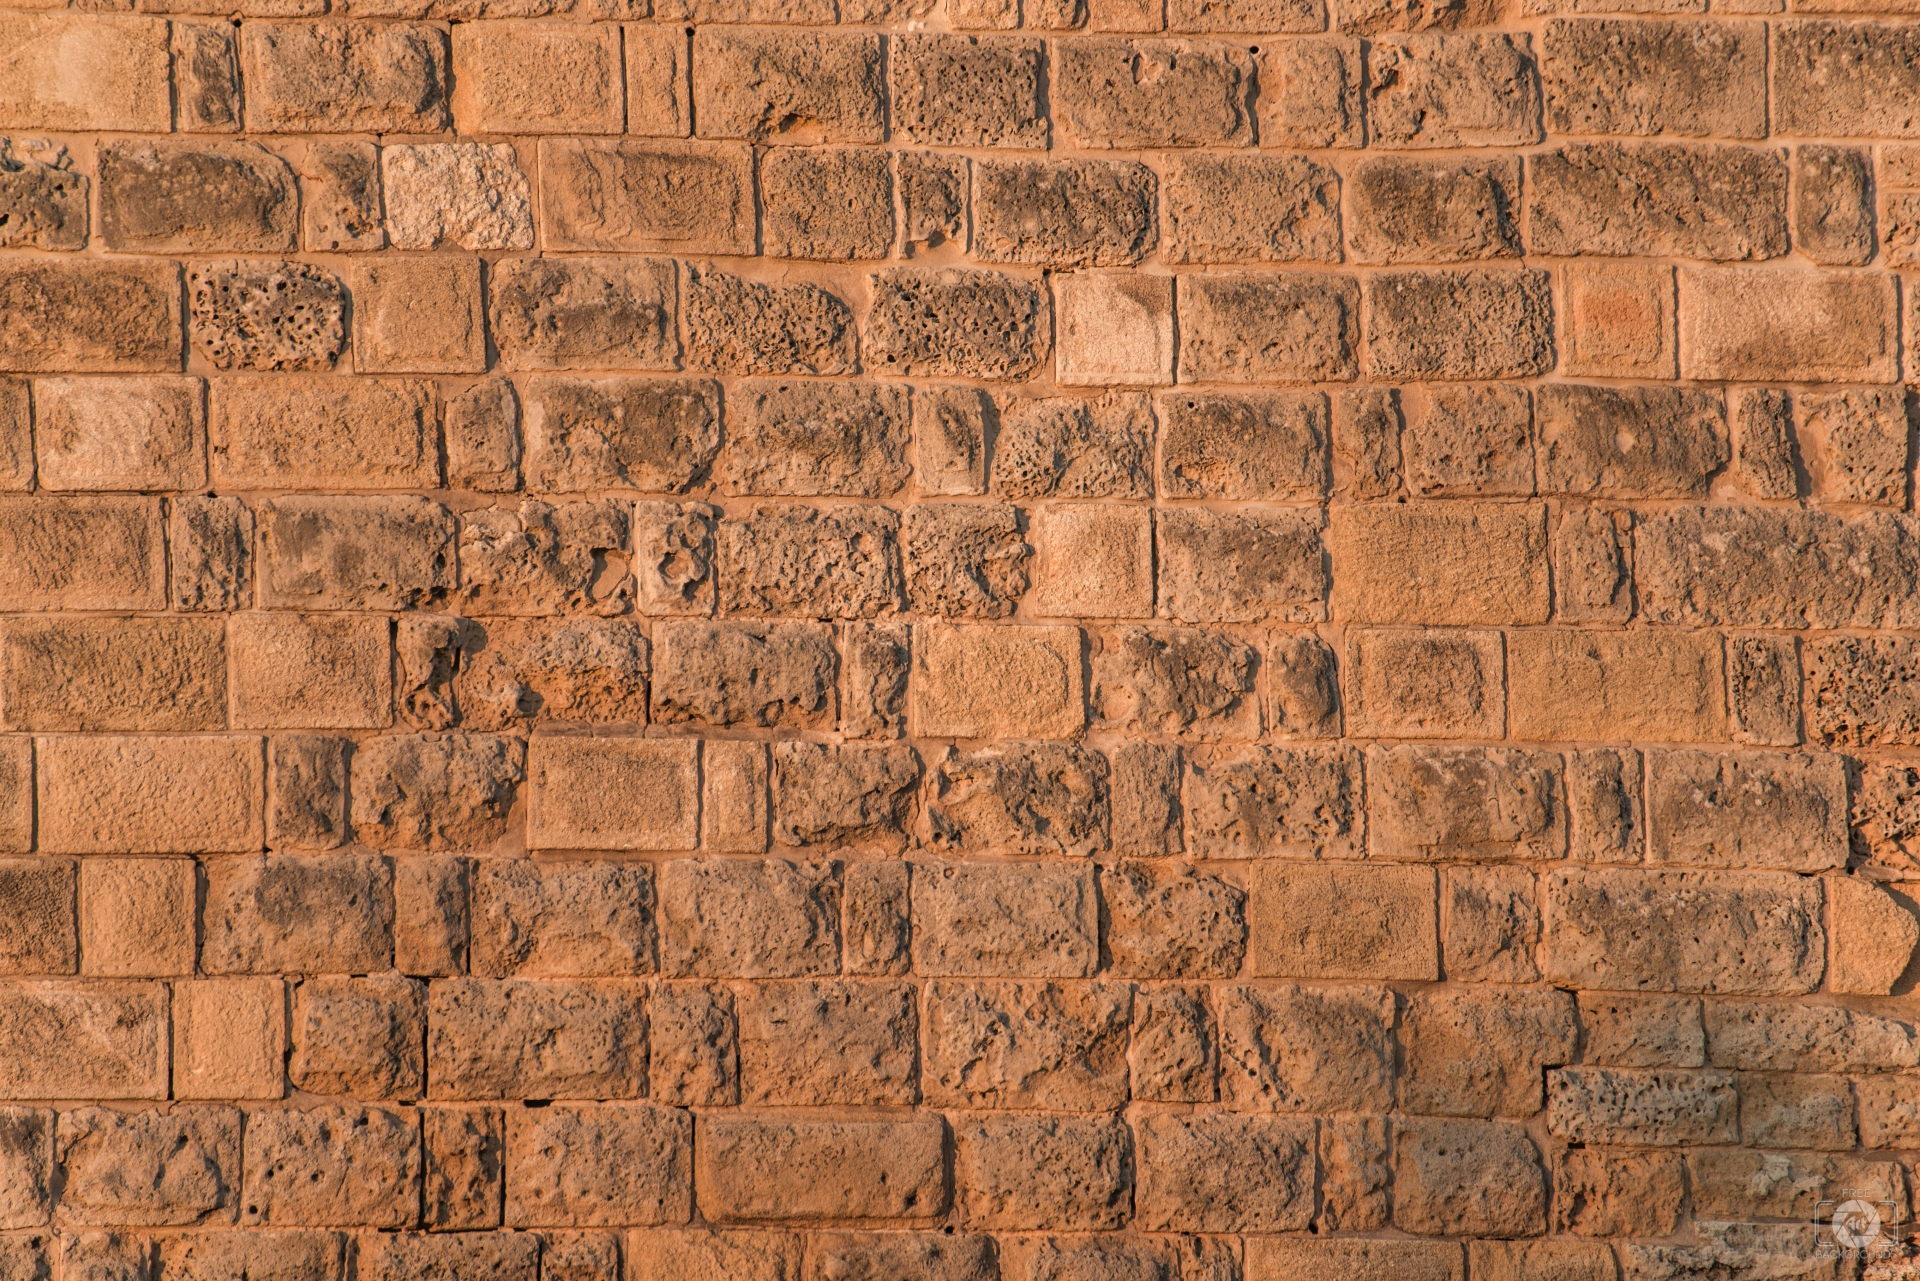 Old Stone Brick Wall Texture - High-quality Free Backgrounds